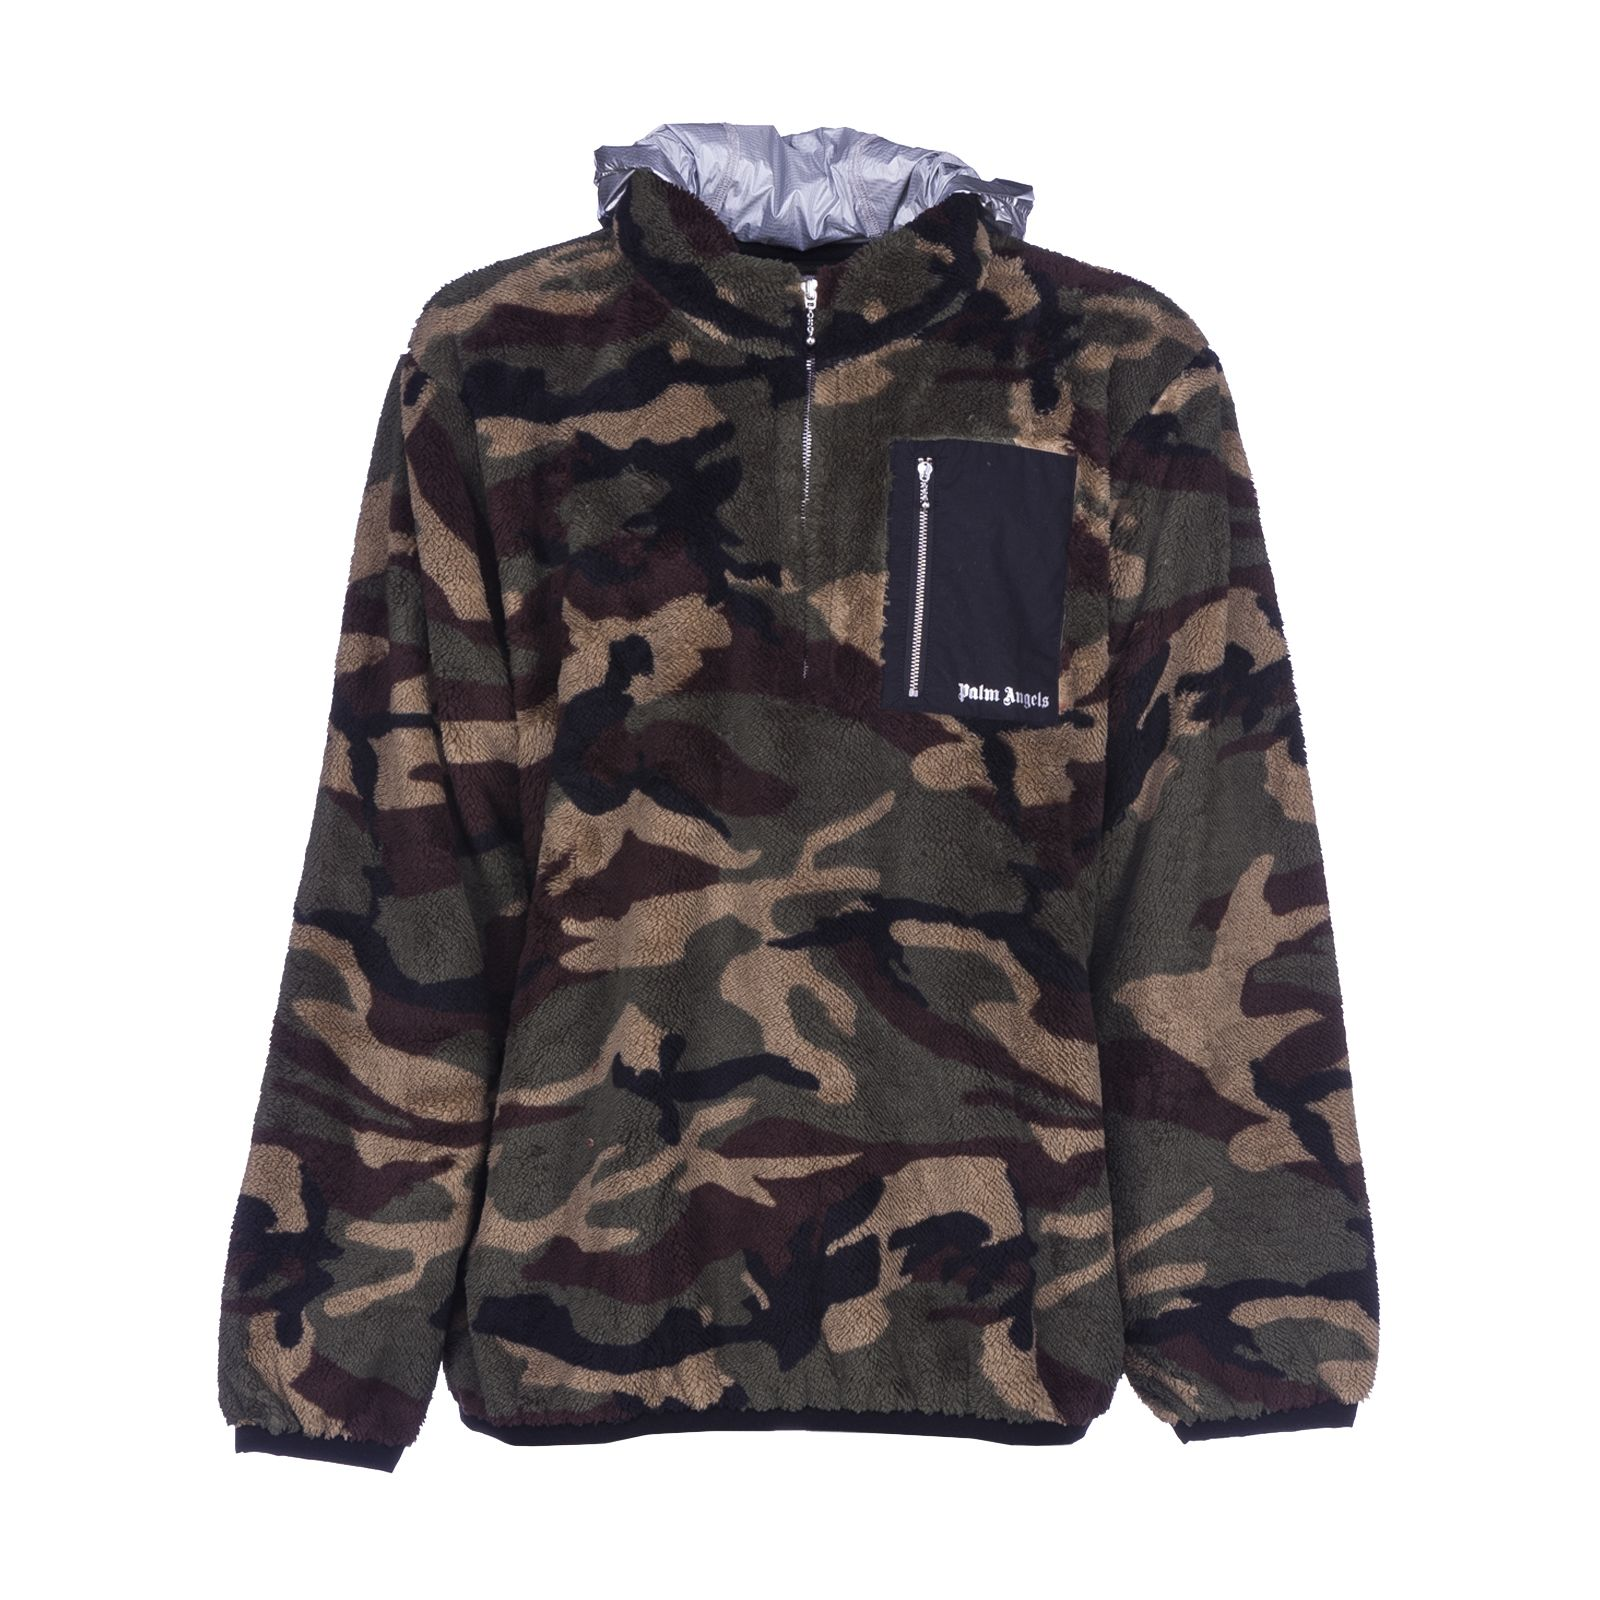 Palm Angels Camouflage Hoody